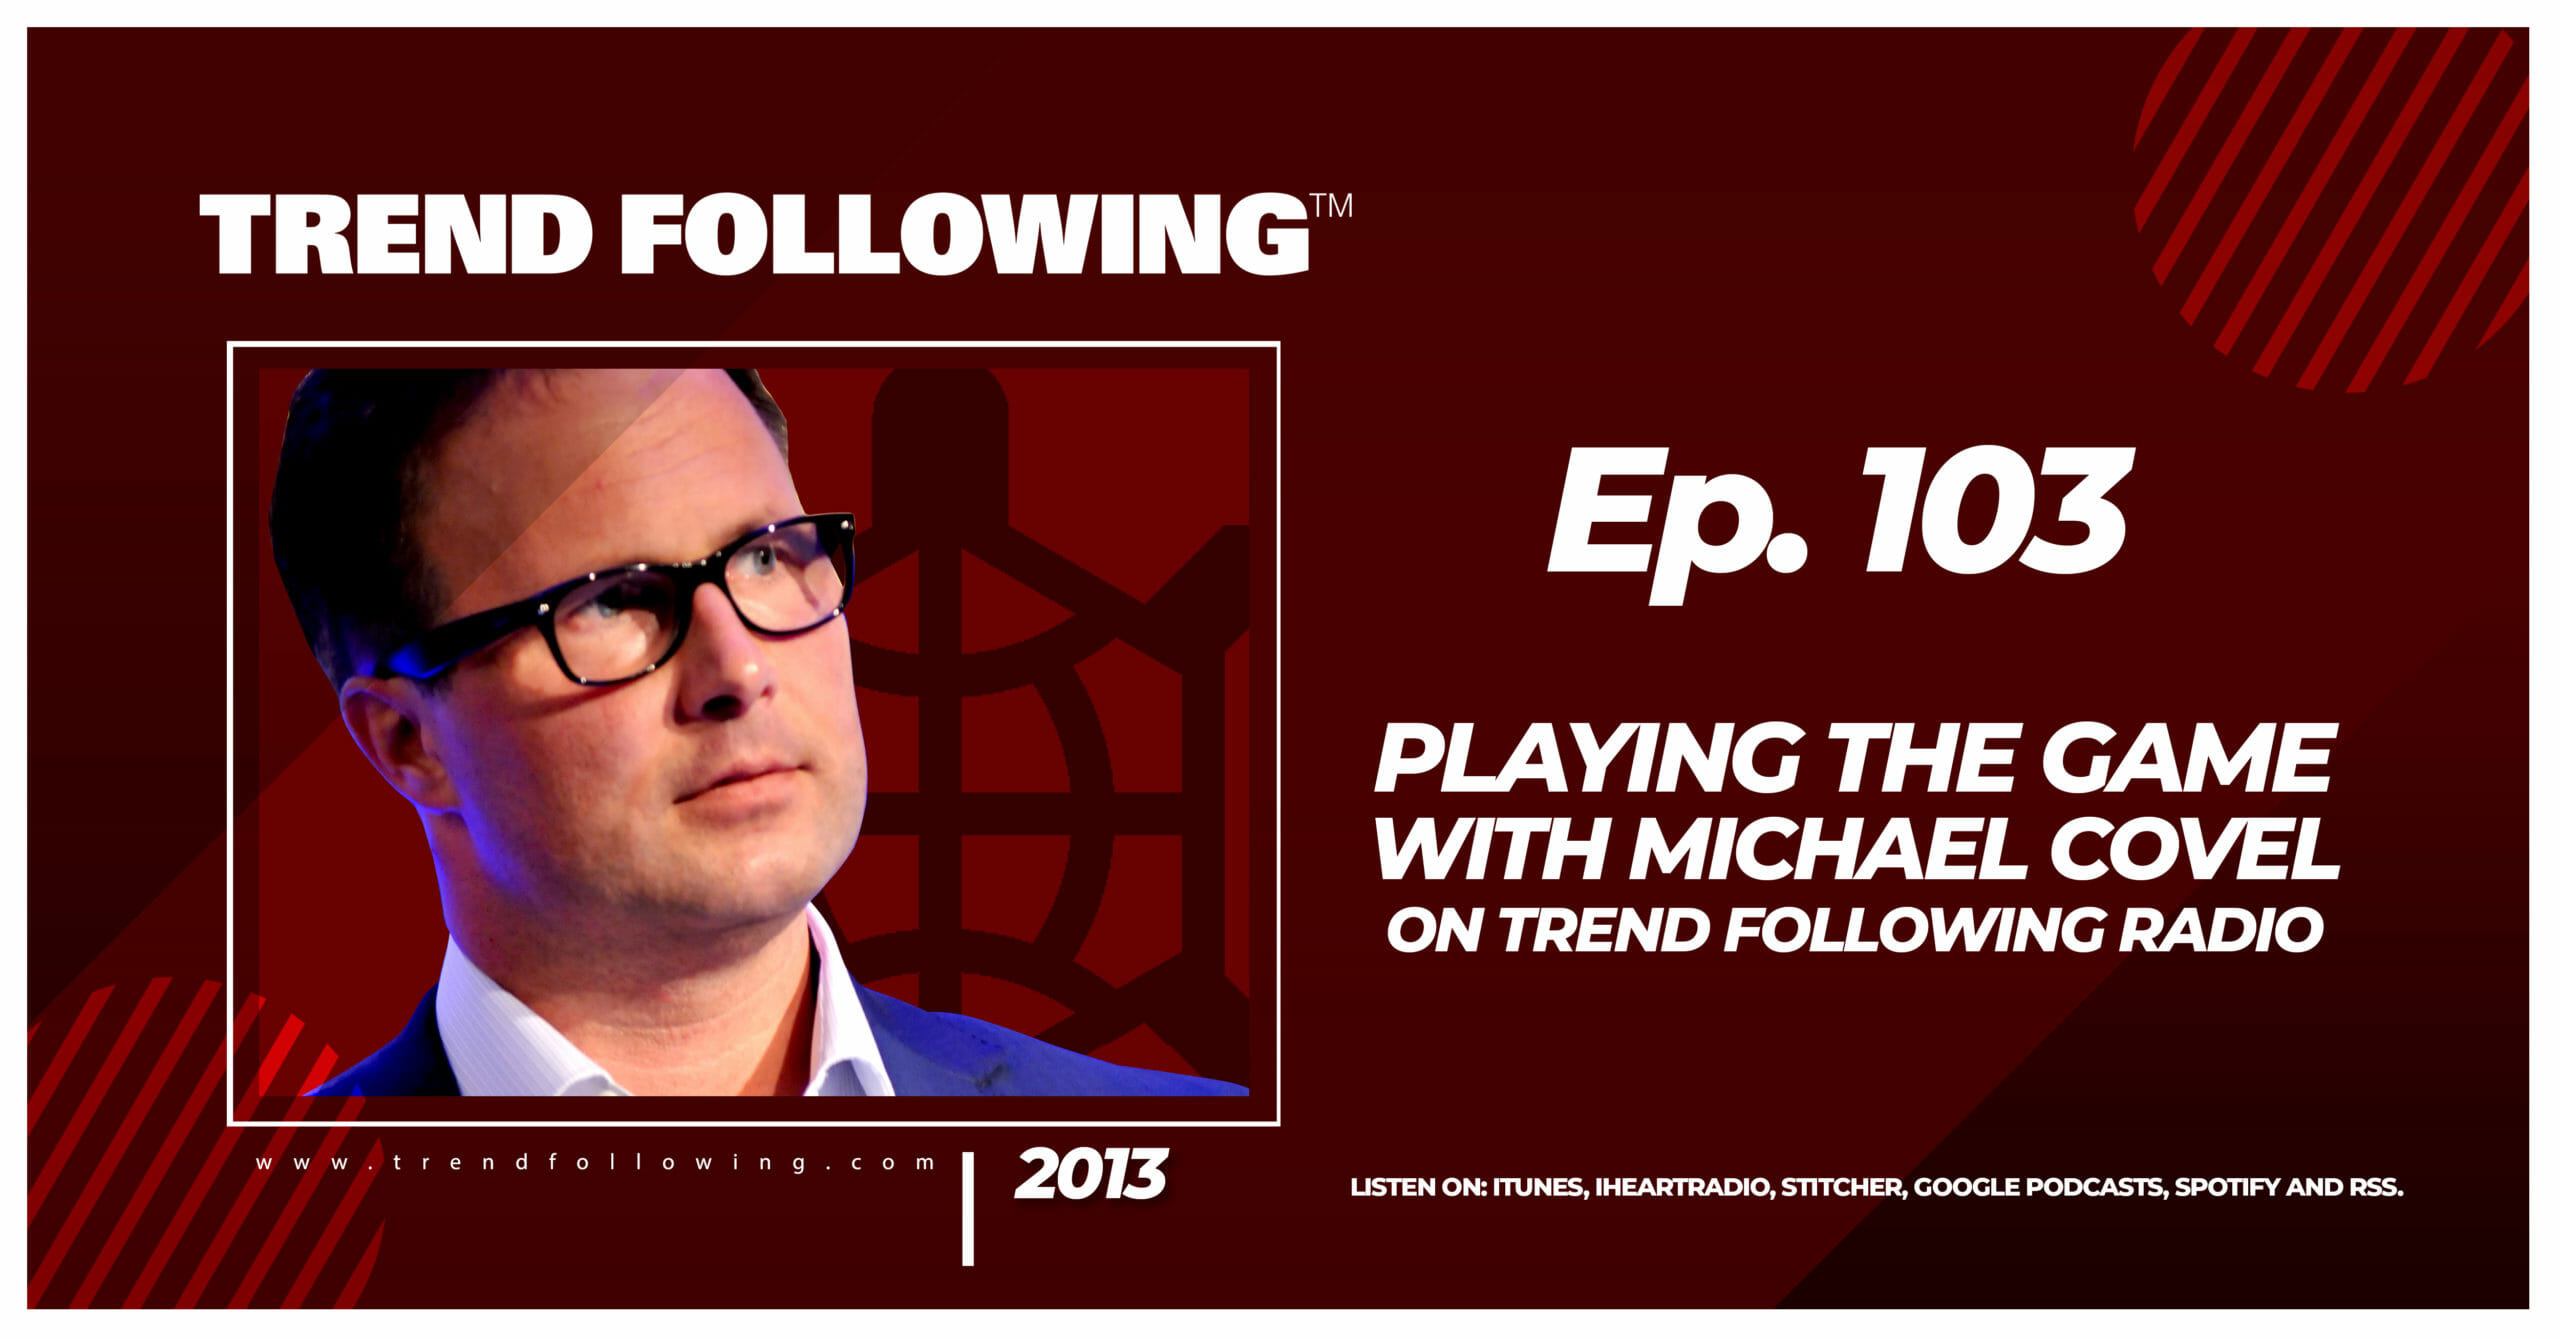 Playing the Game with Michael Covel on Trend Following Radio